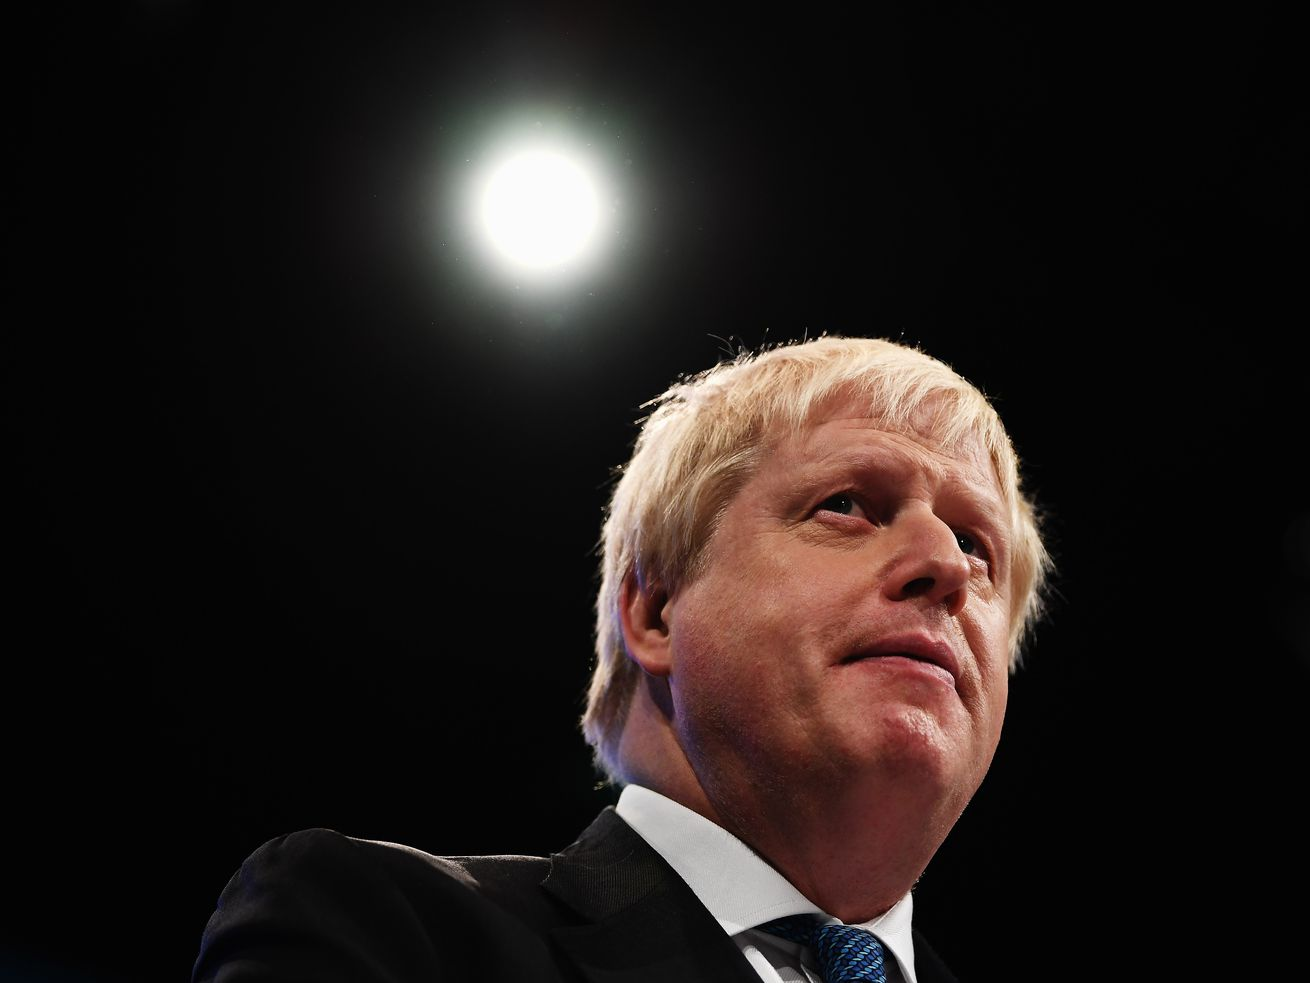 Then-Foreign Secretary Boris Johnson delivers his keynote speech on day three of the annual Conservative Party conference on October 3, 2017, in Manchester, England.